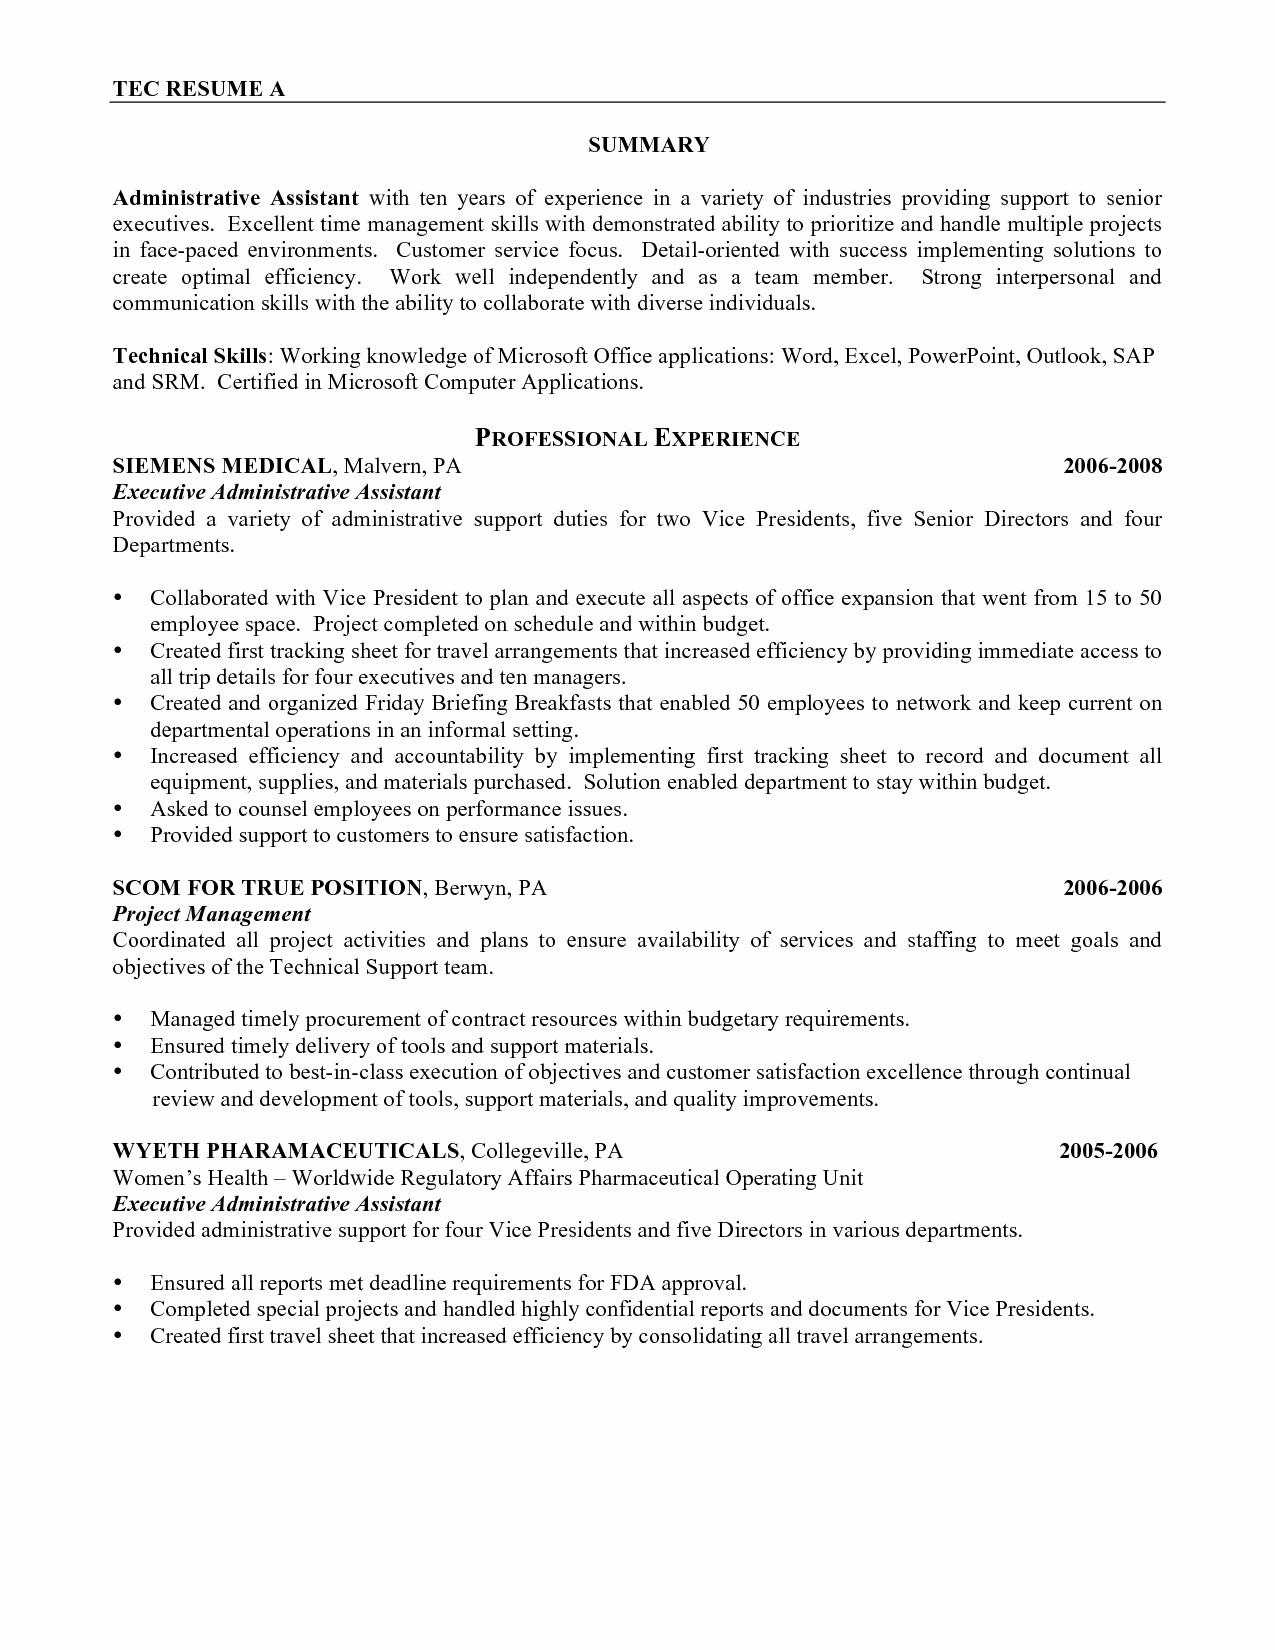 Customer Satisfaction Letter Template - Administrative assistant Cover Letter Template Awesome New Example